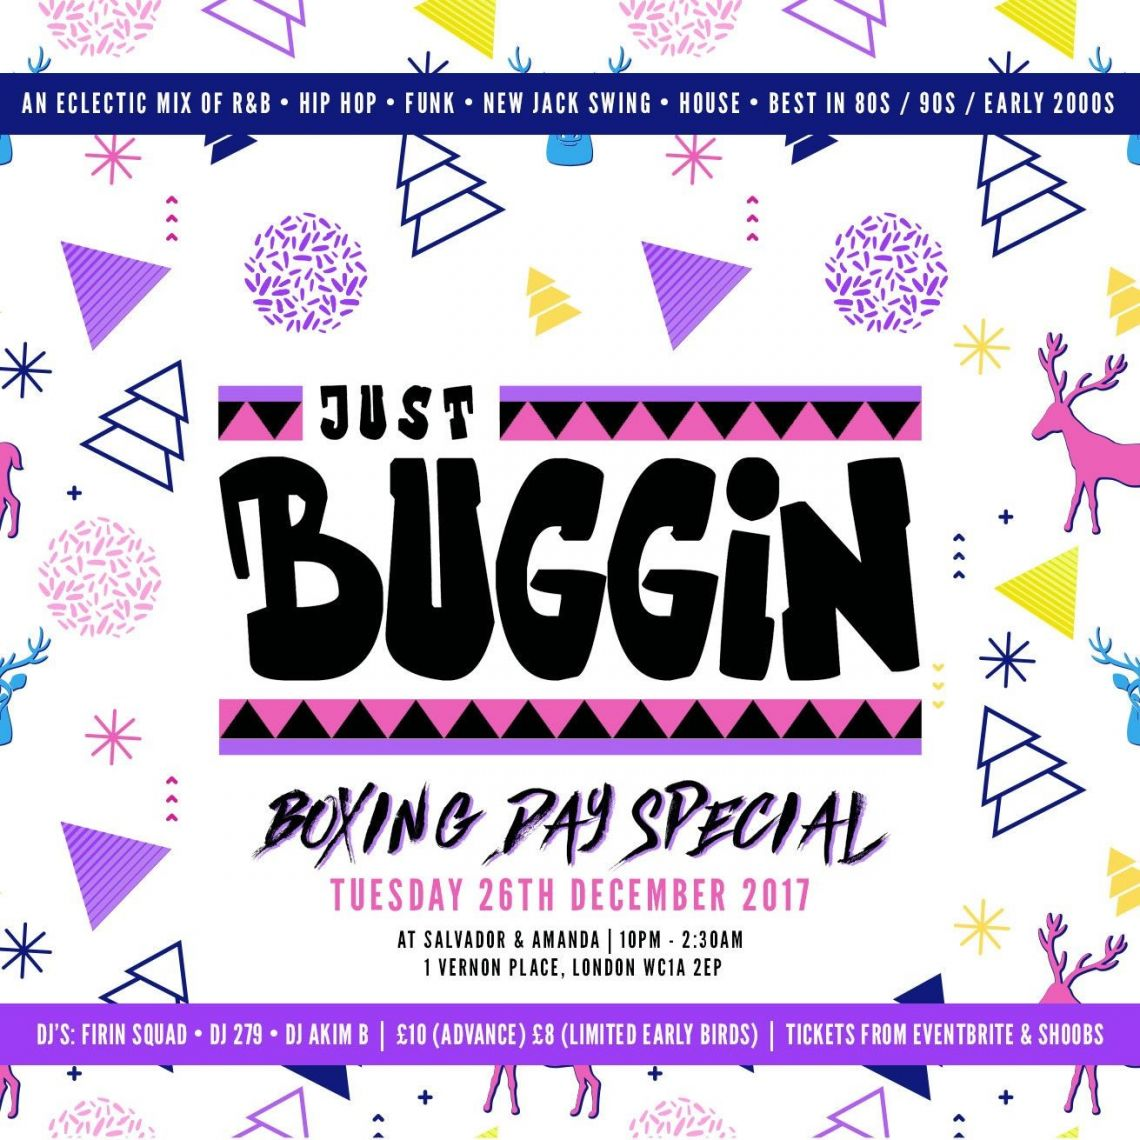 BuzzzTent Free Bud and Beer parties at Just Buggin